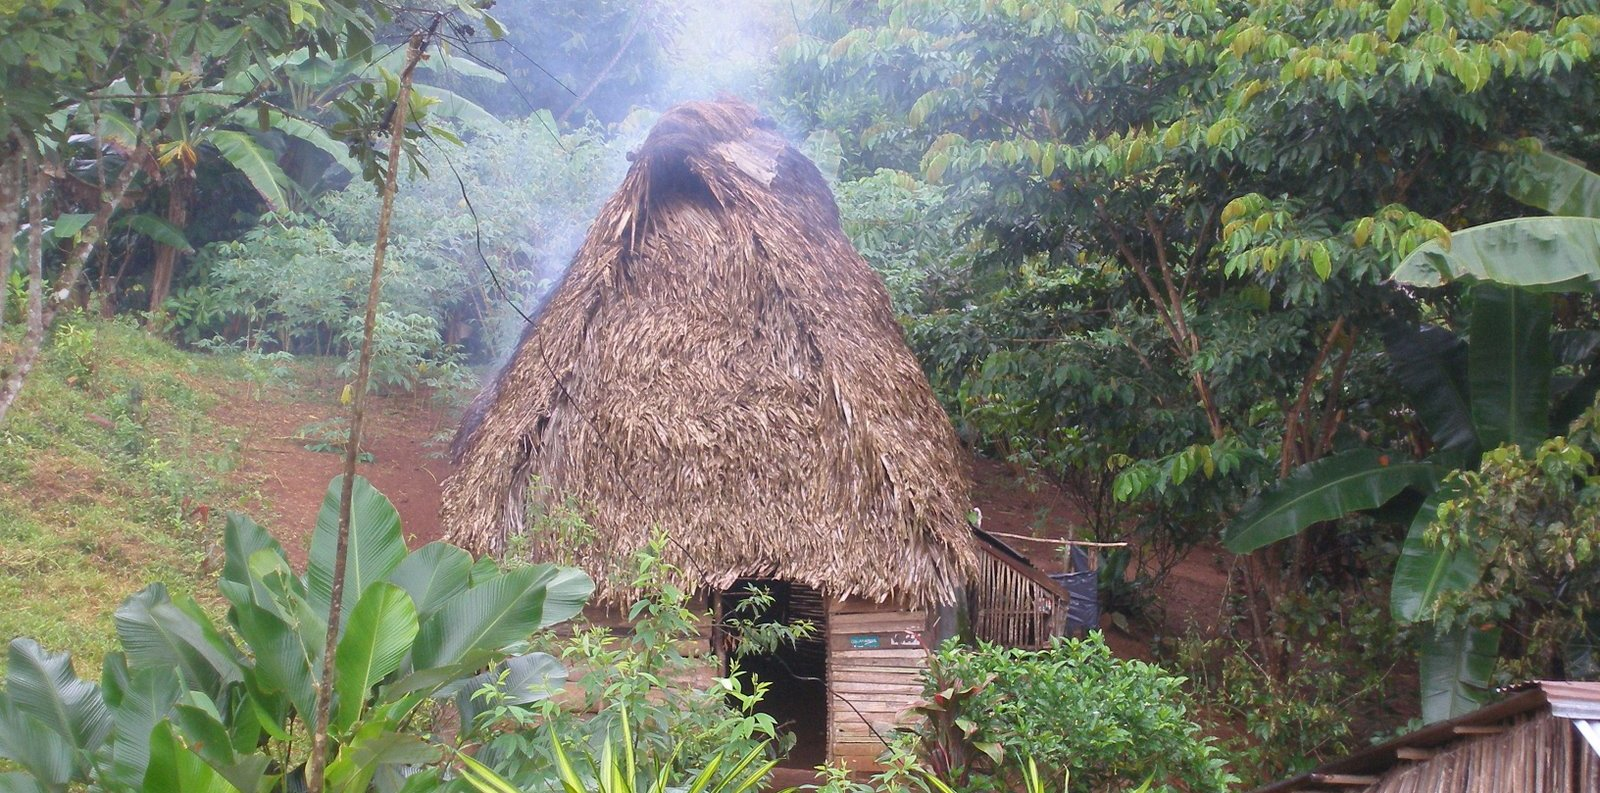 Jungle Camp Training with New Tribes Mission